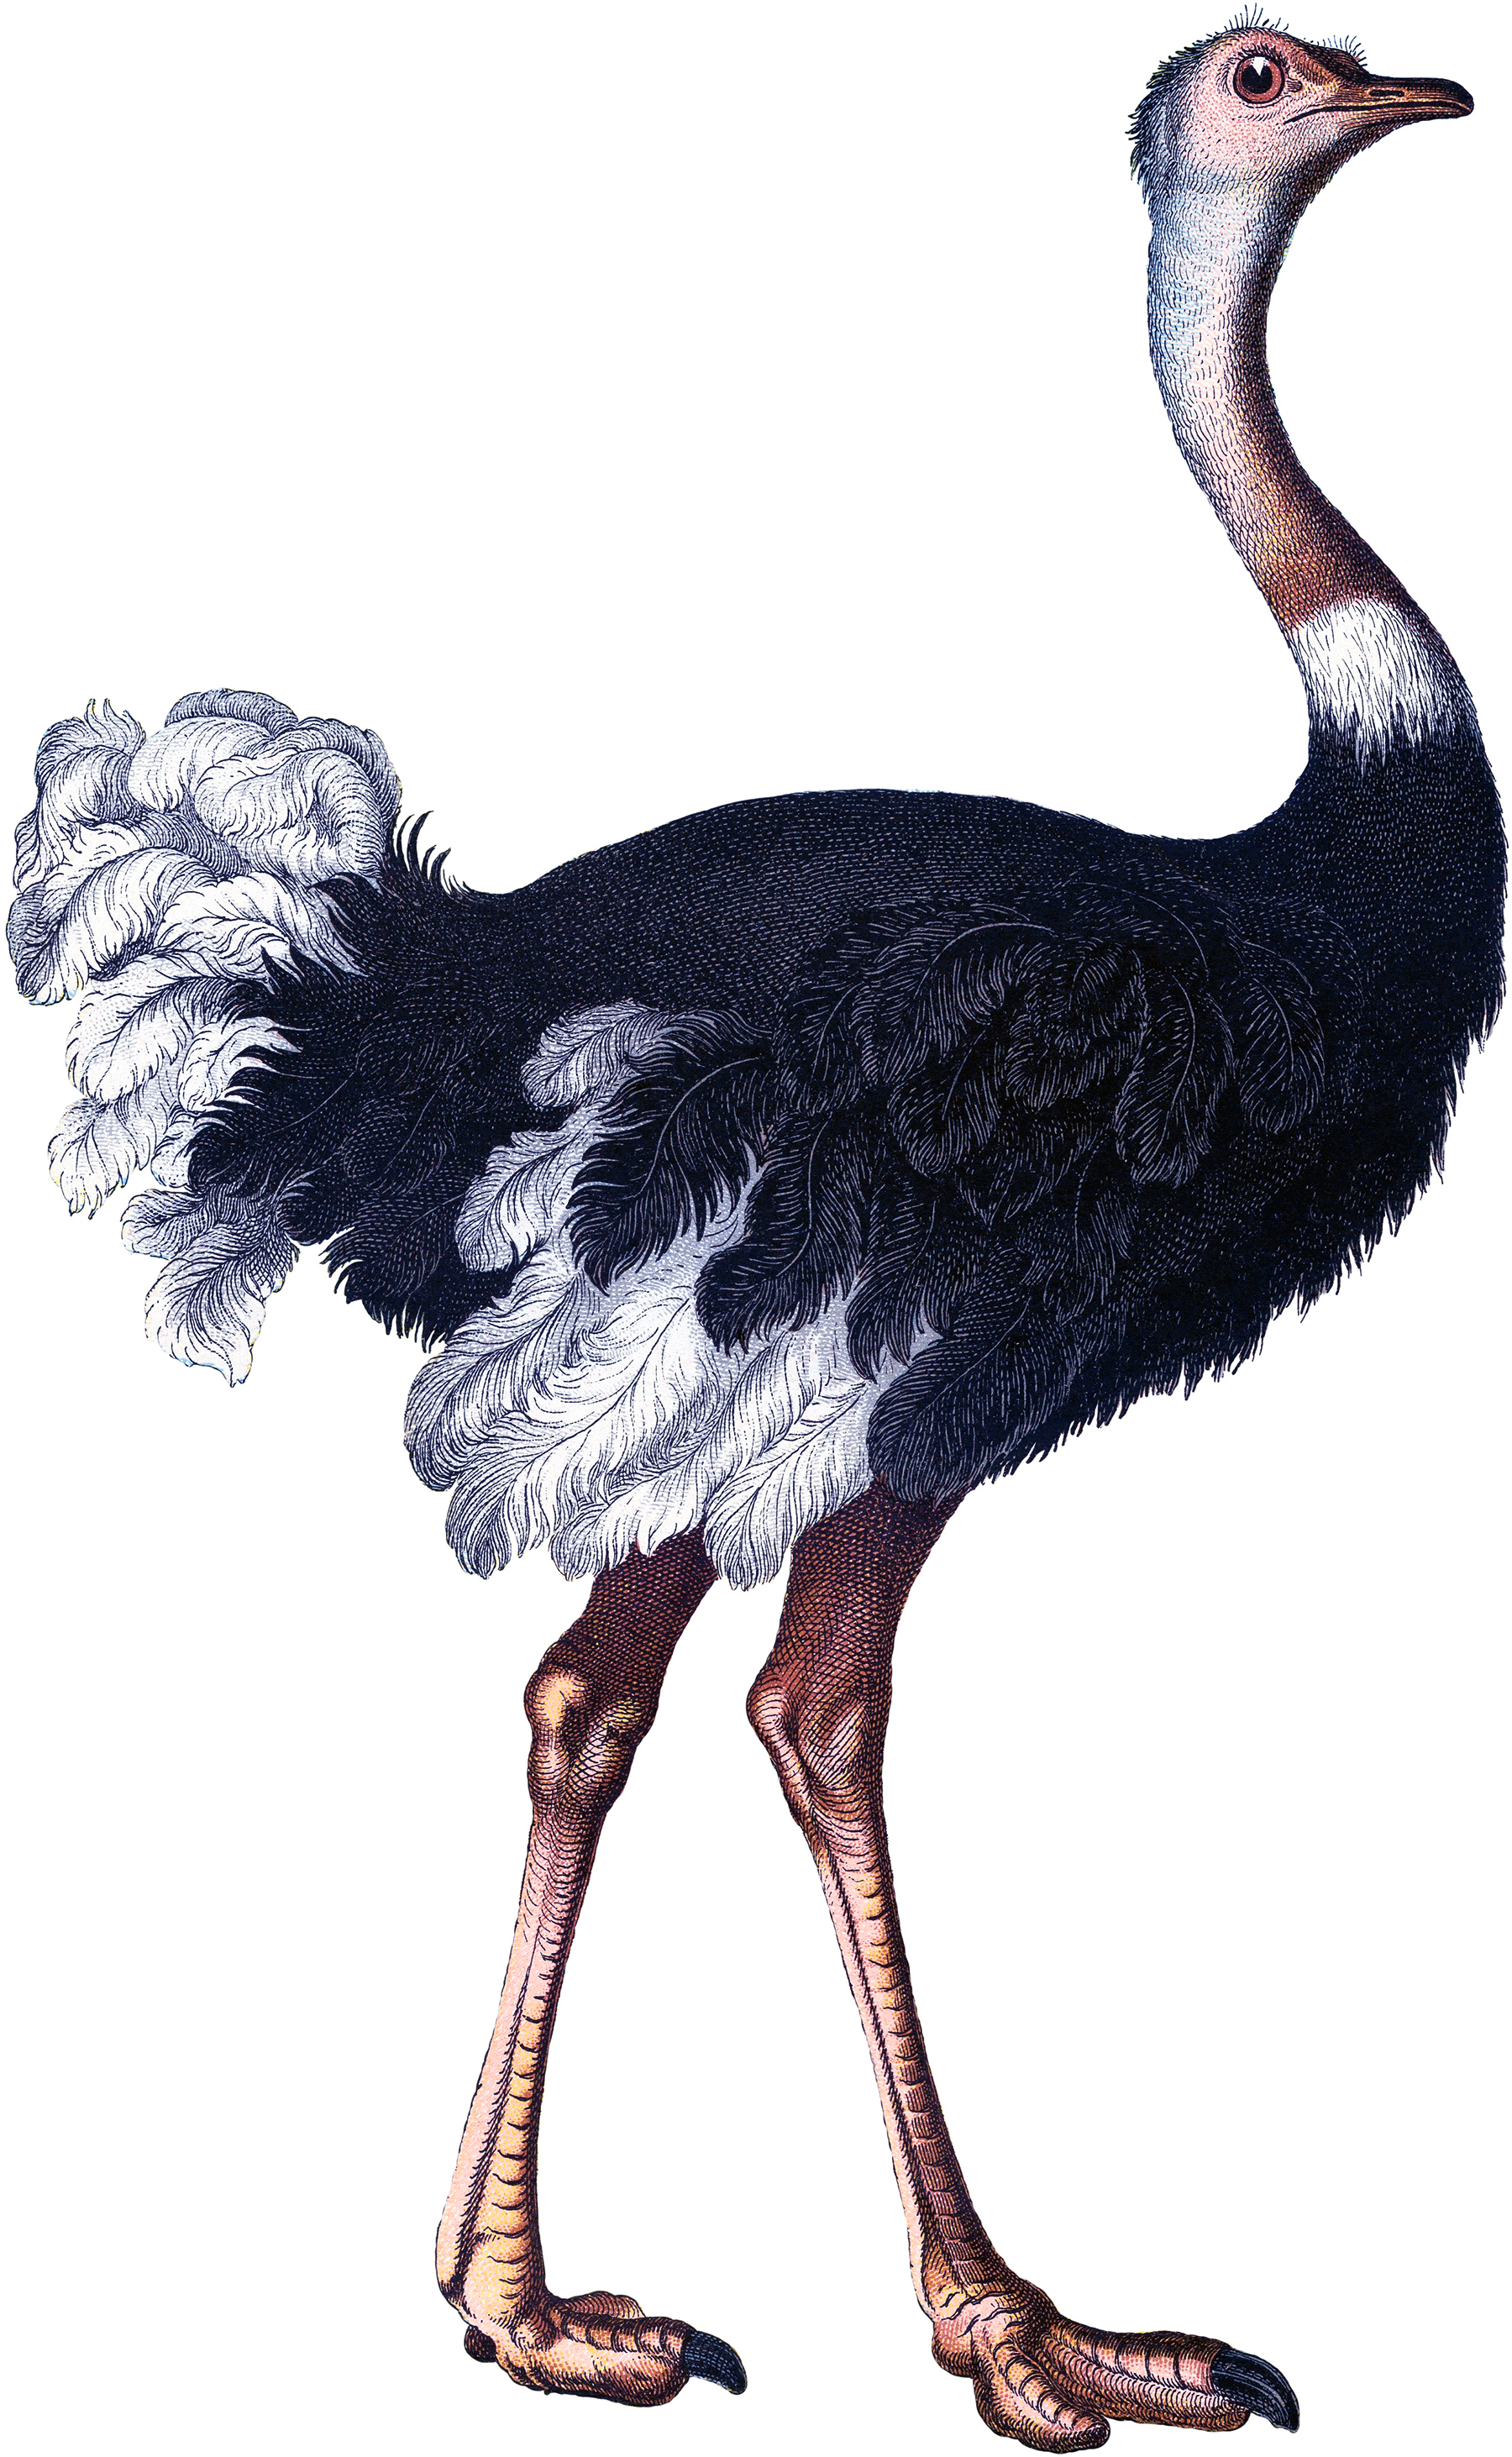 Vintage Ostrich Image - The Graphics Fairy